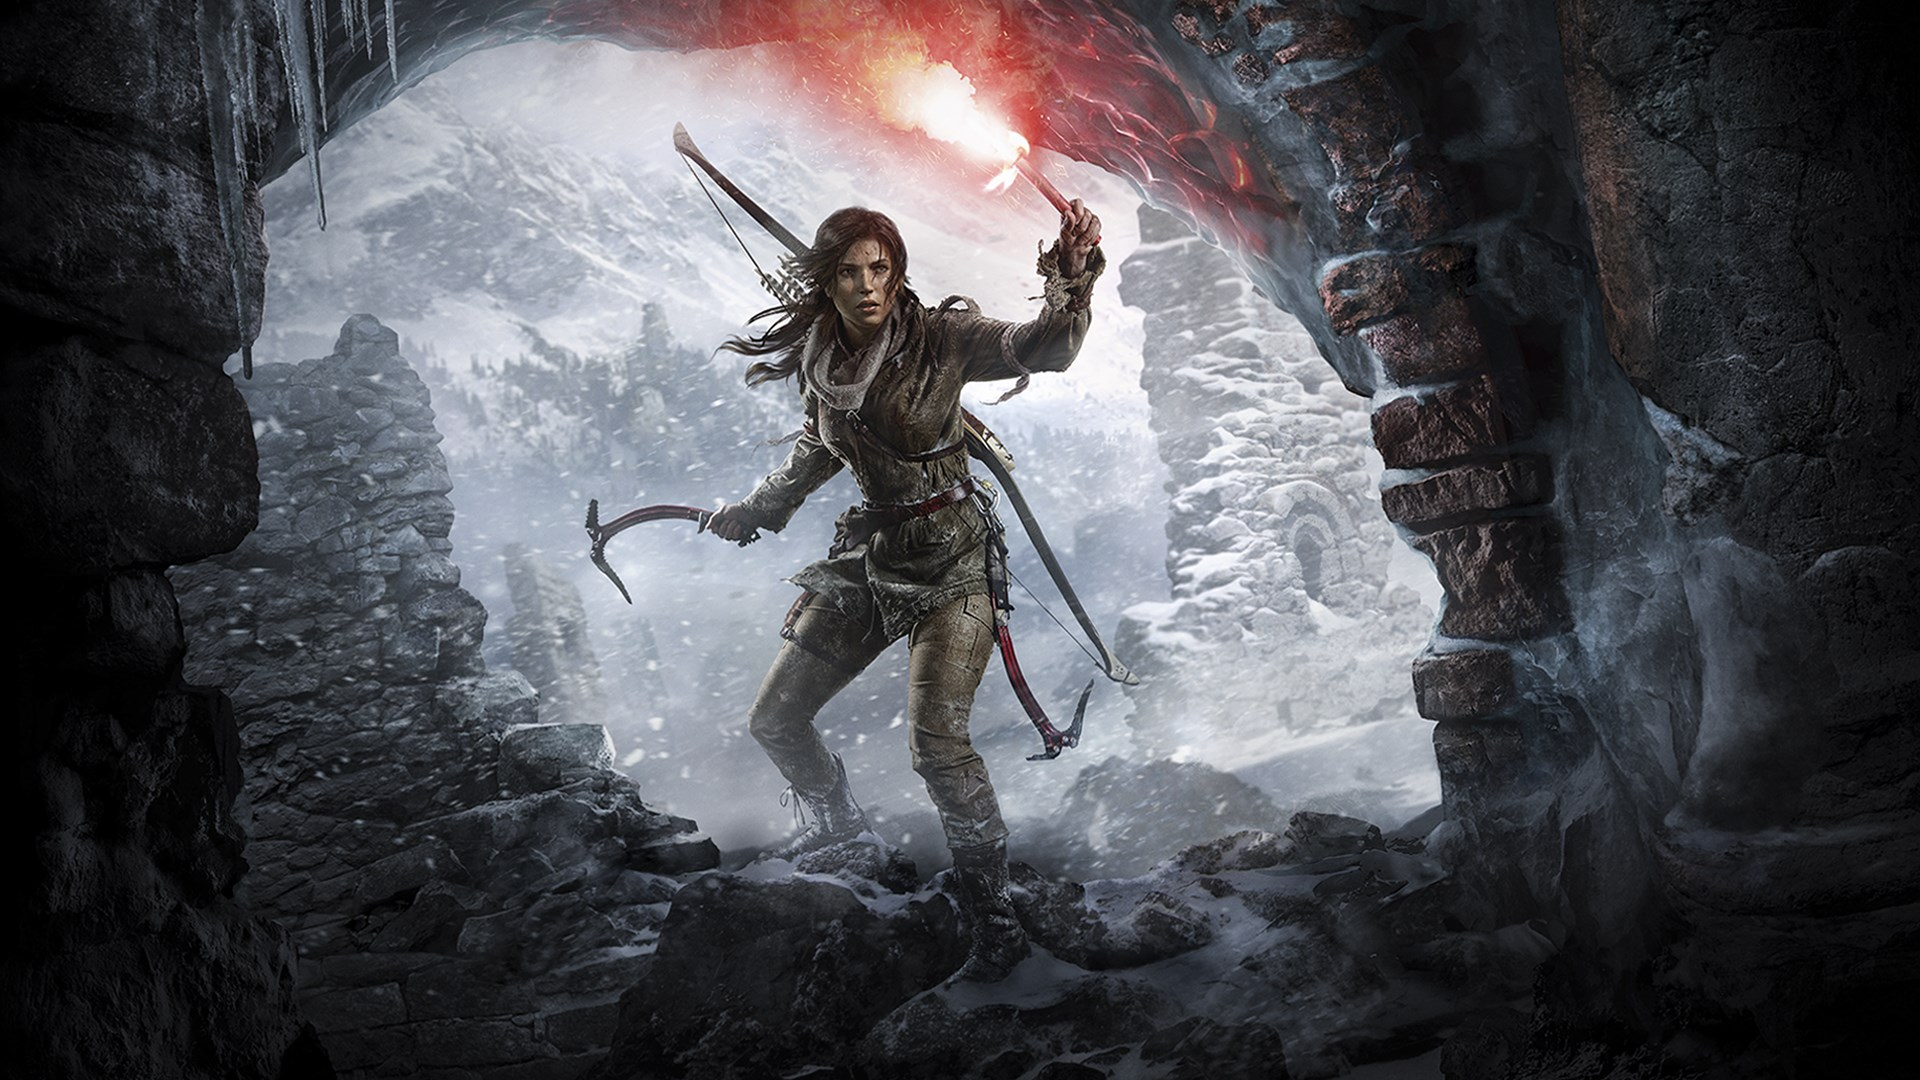 30. Rise of the Tomb Raider